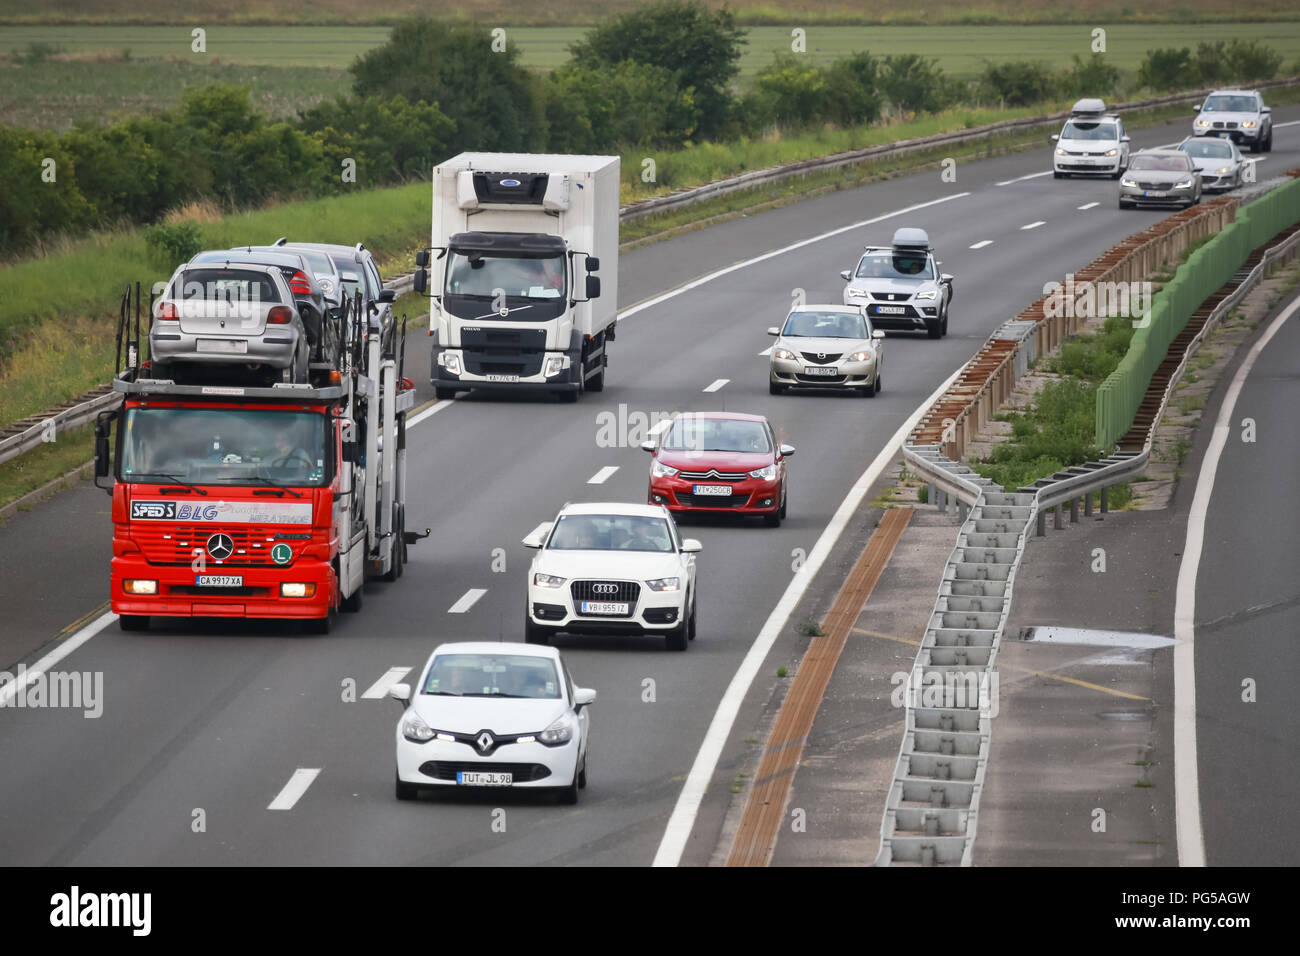 Zagreb, Croatia - August 11th, 2018 : Car transport truck filled up with used cars driving on Zagreb motor way bypass in Zagreb, Croatia. Stock Photo